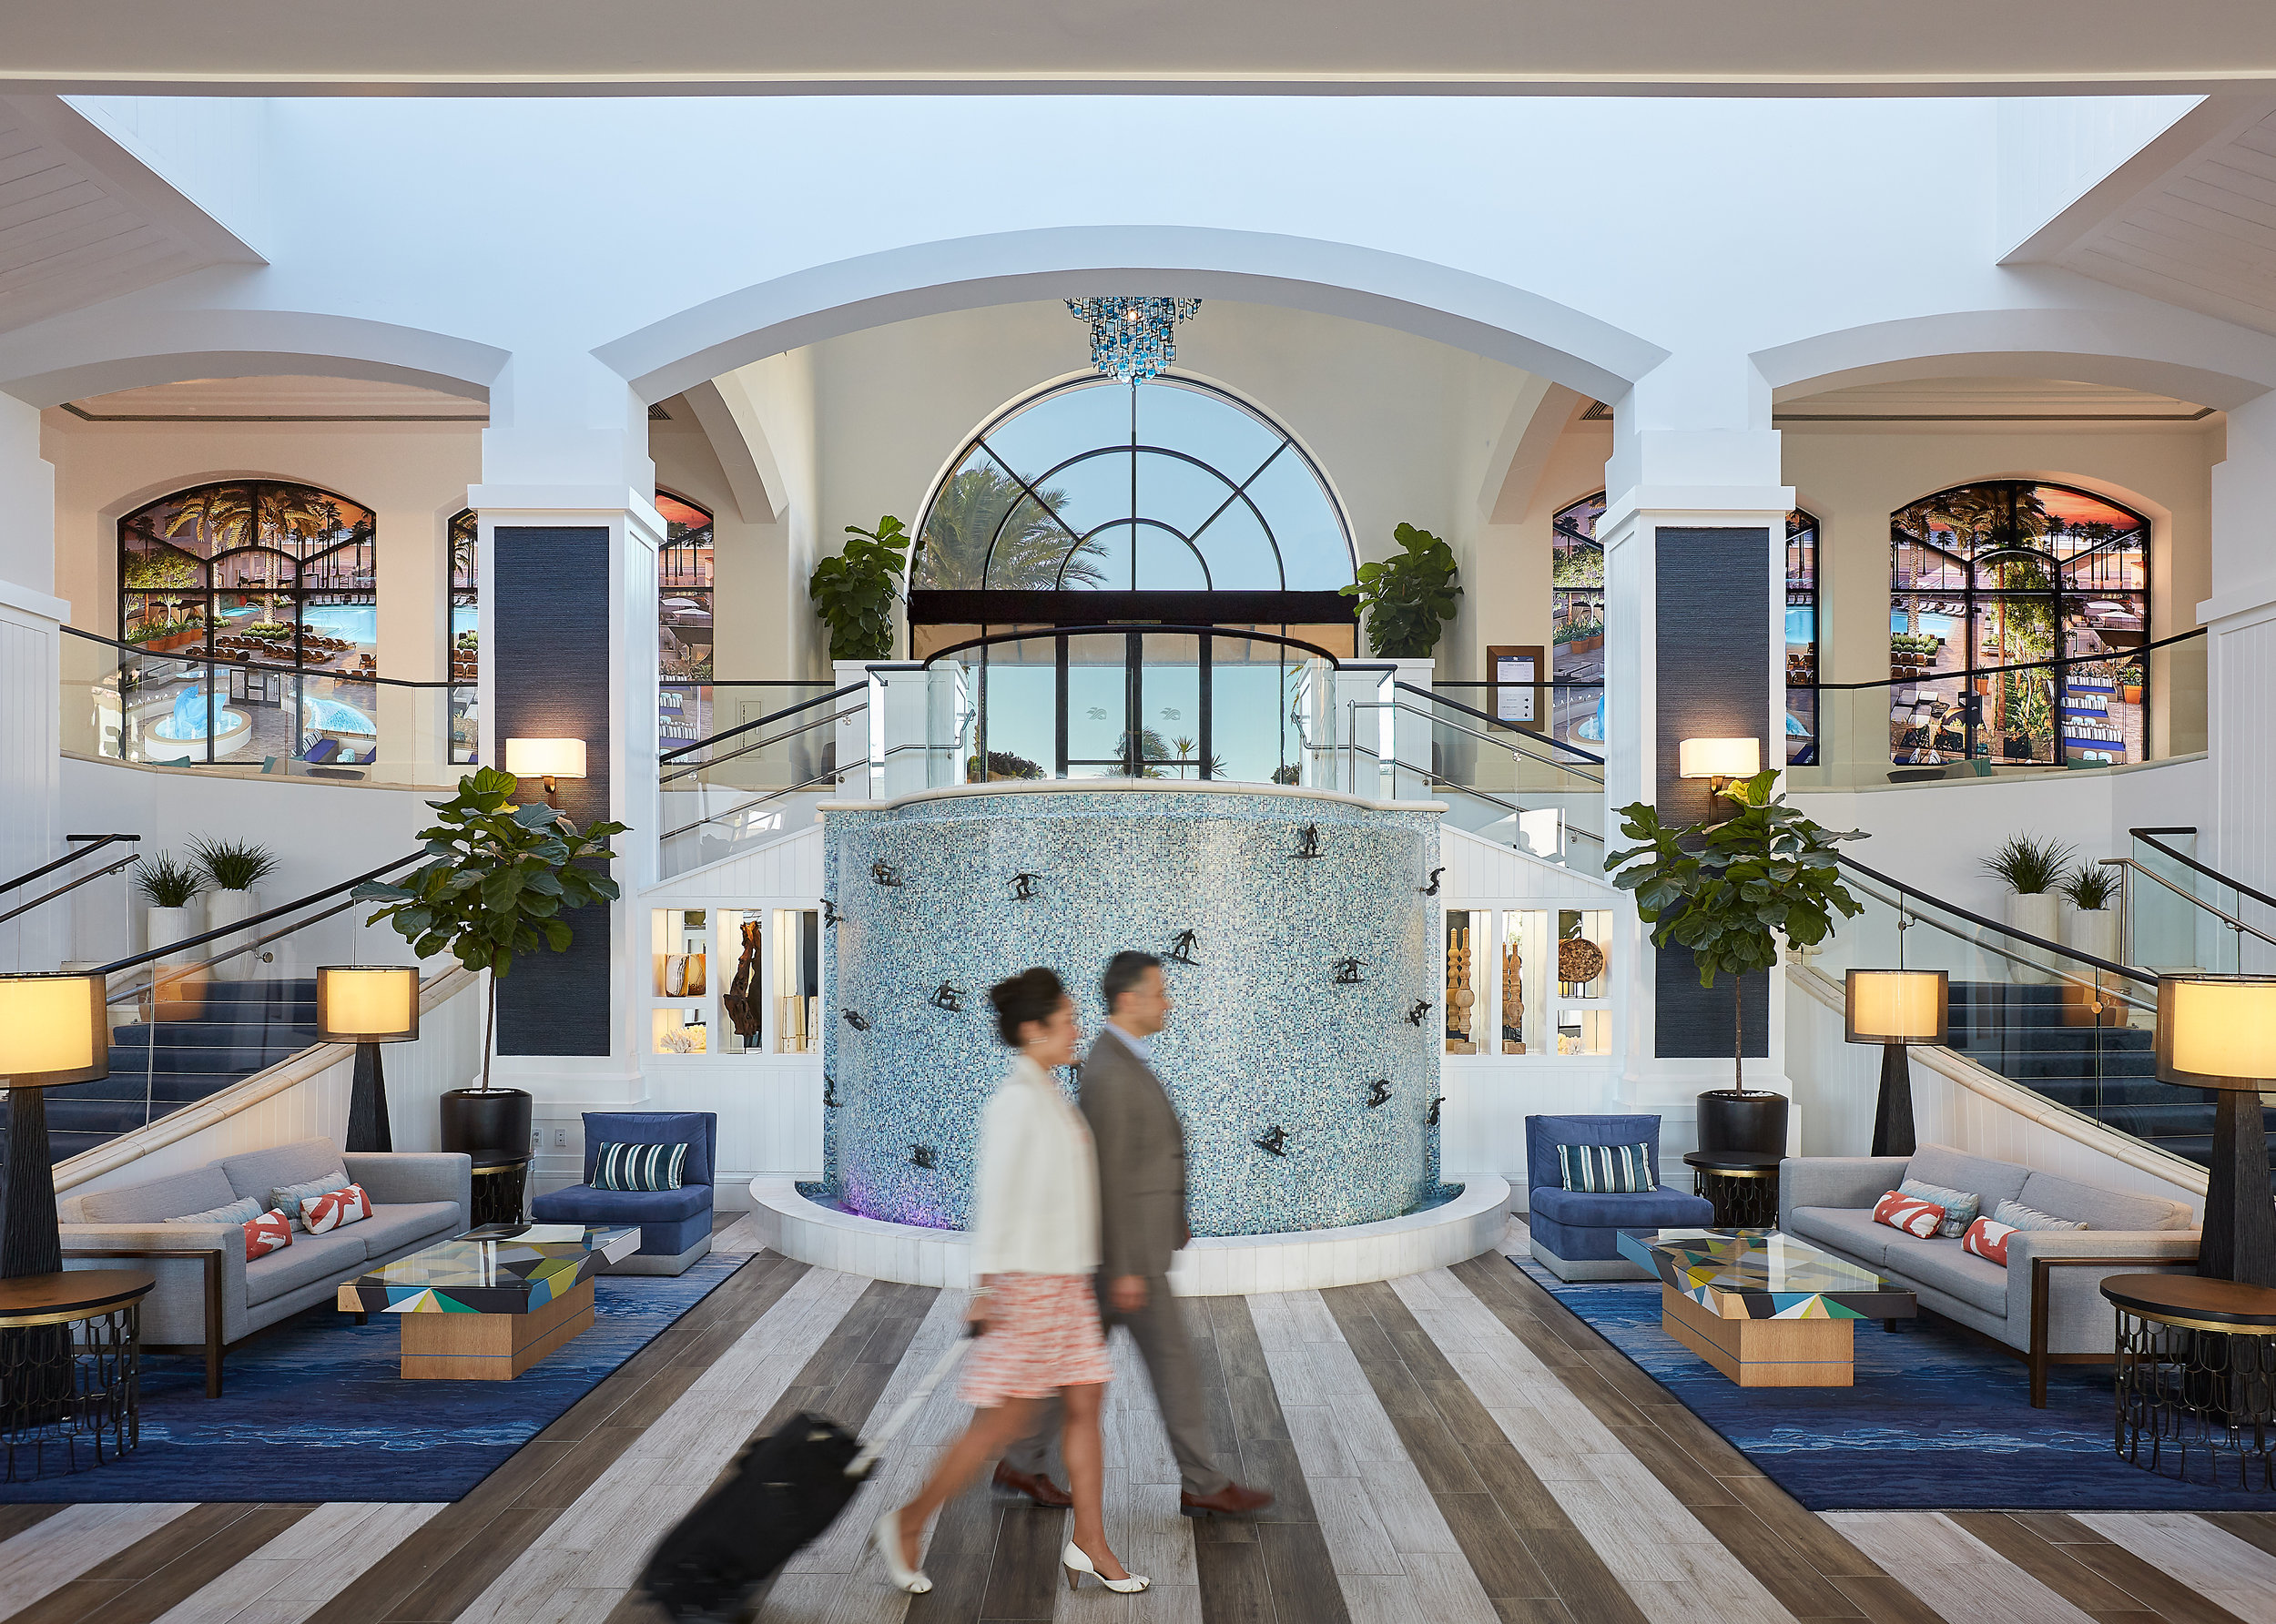 The Waterfront Beach Resort Lobby